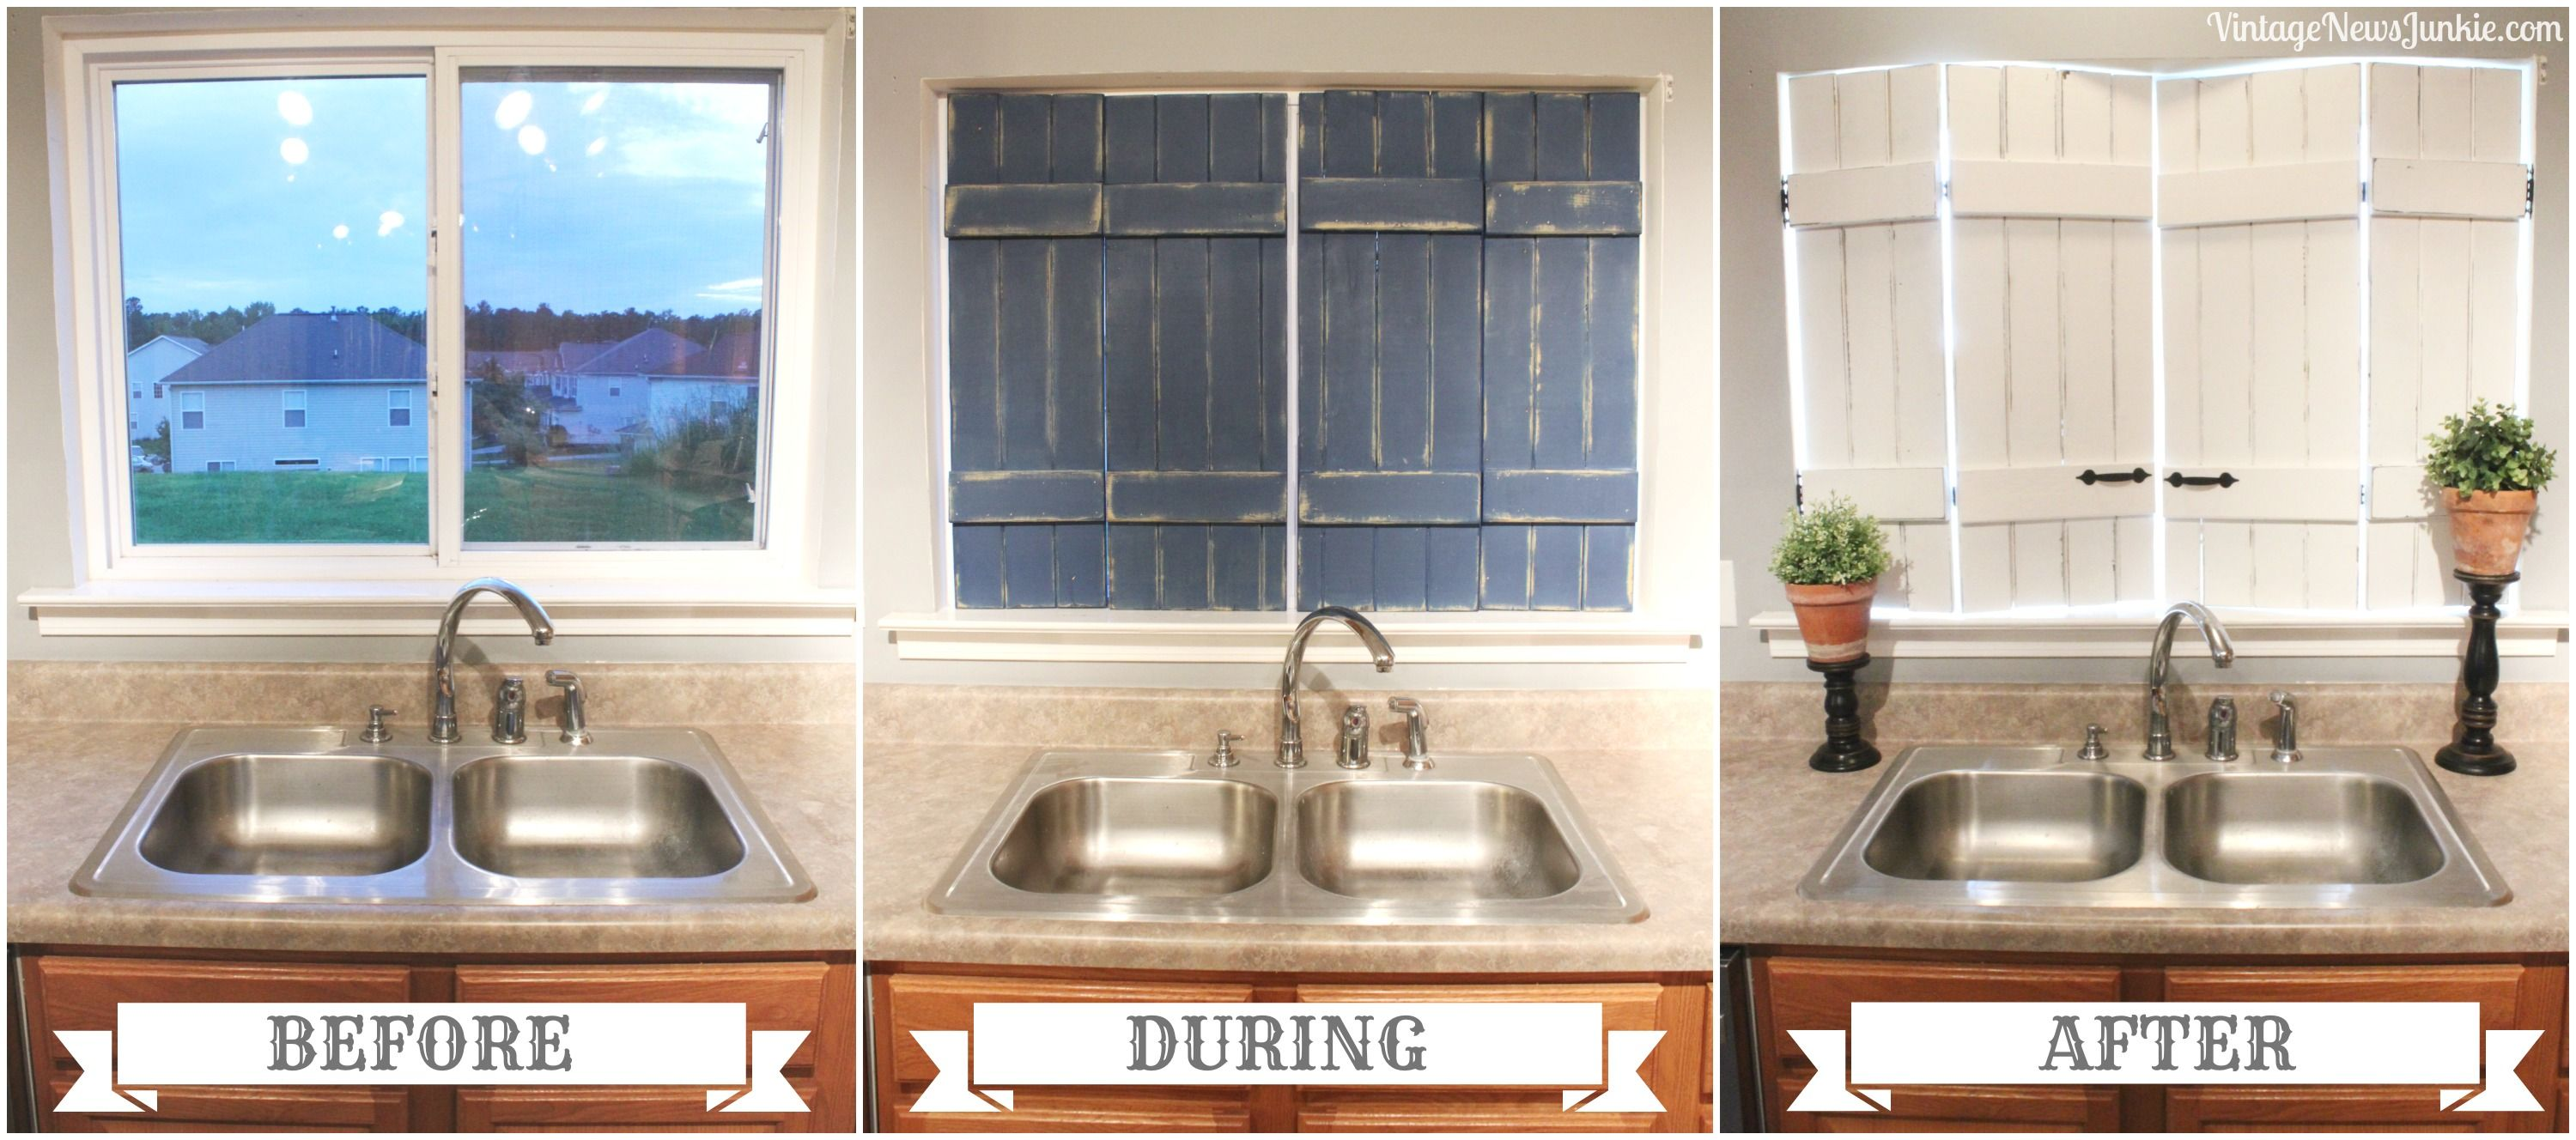 DIY Upcycled Shutter Before After made from bed slats by